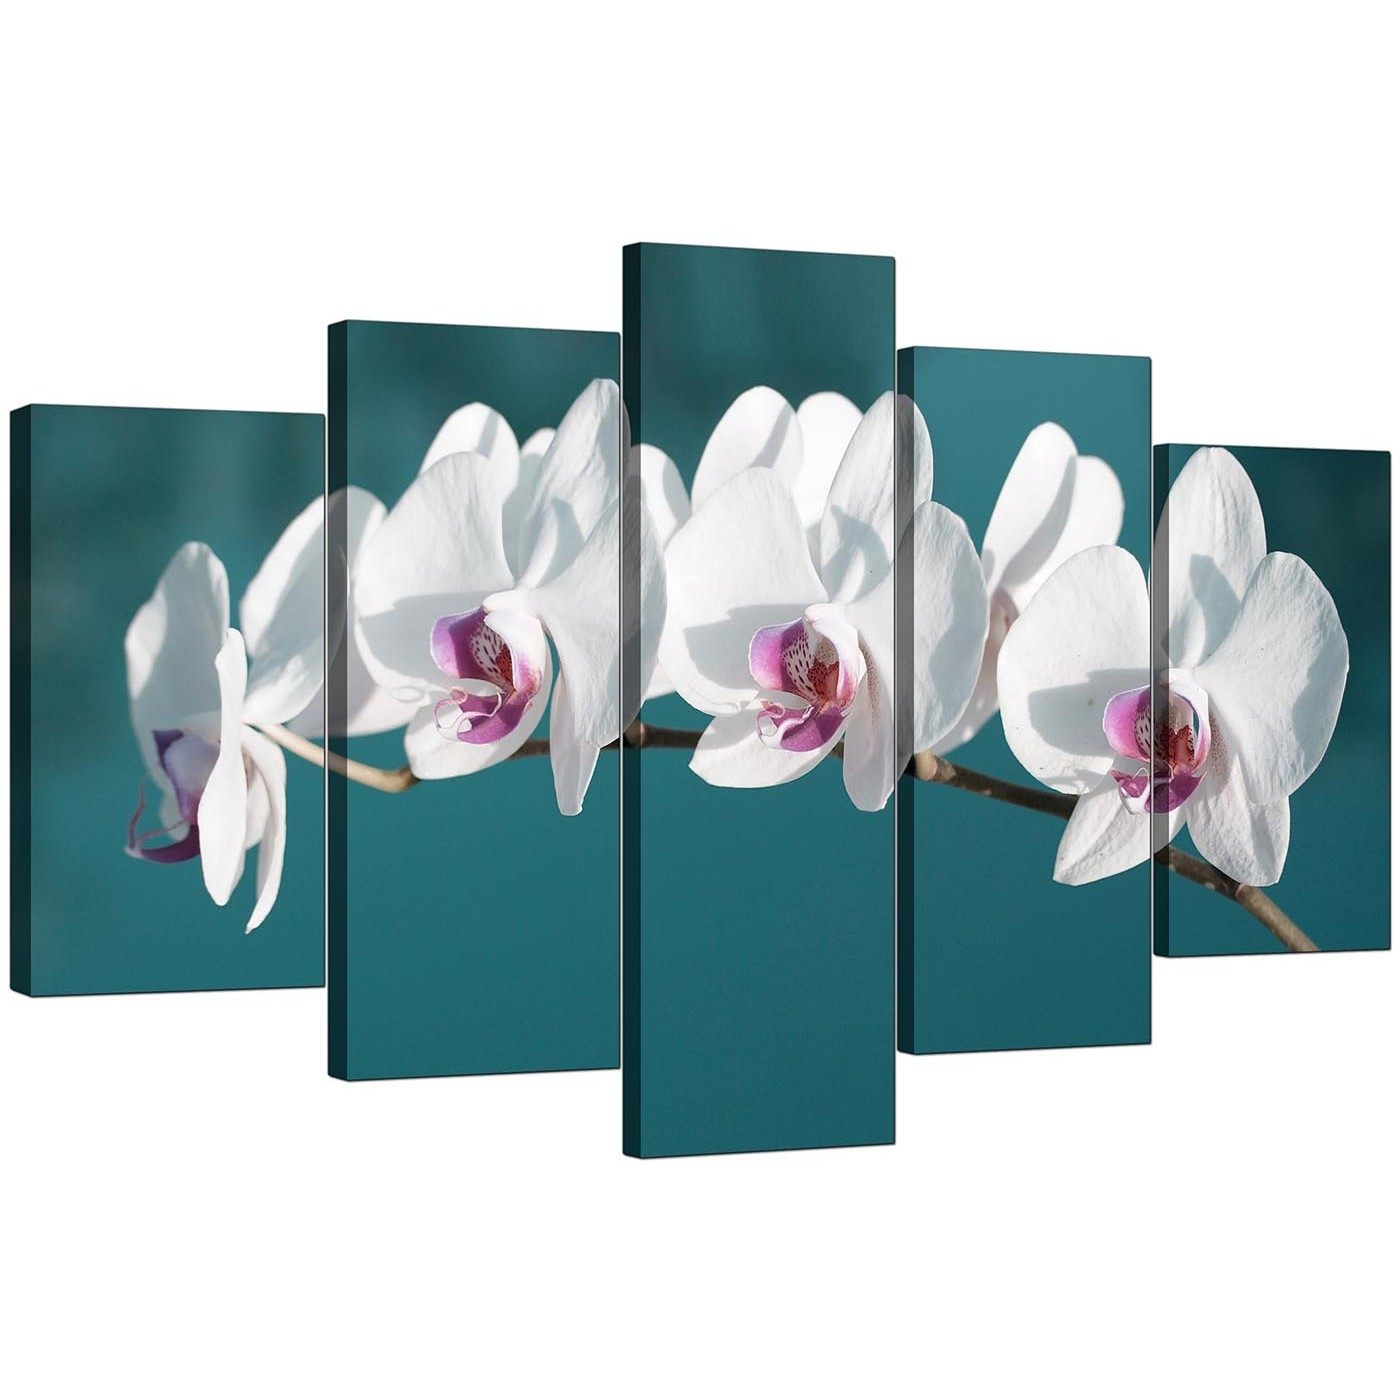 Extra Large Orchids Canvas Prints 5 Panel In Teal In Most Current Orchid Canvas Wall Art (View 3 of 15)